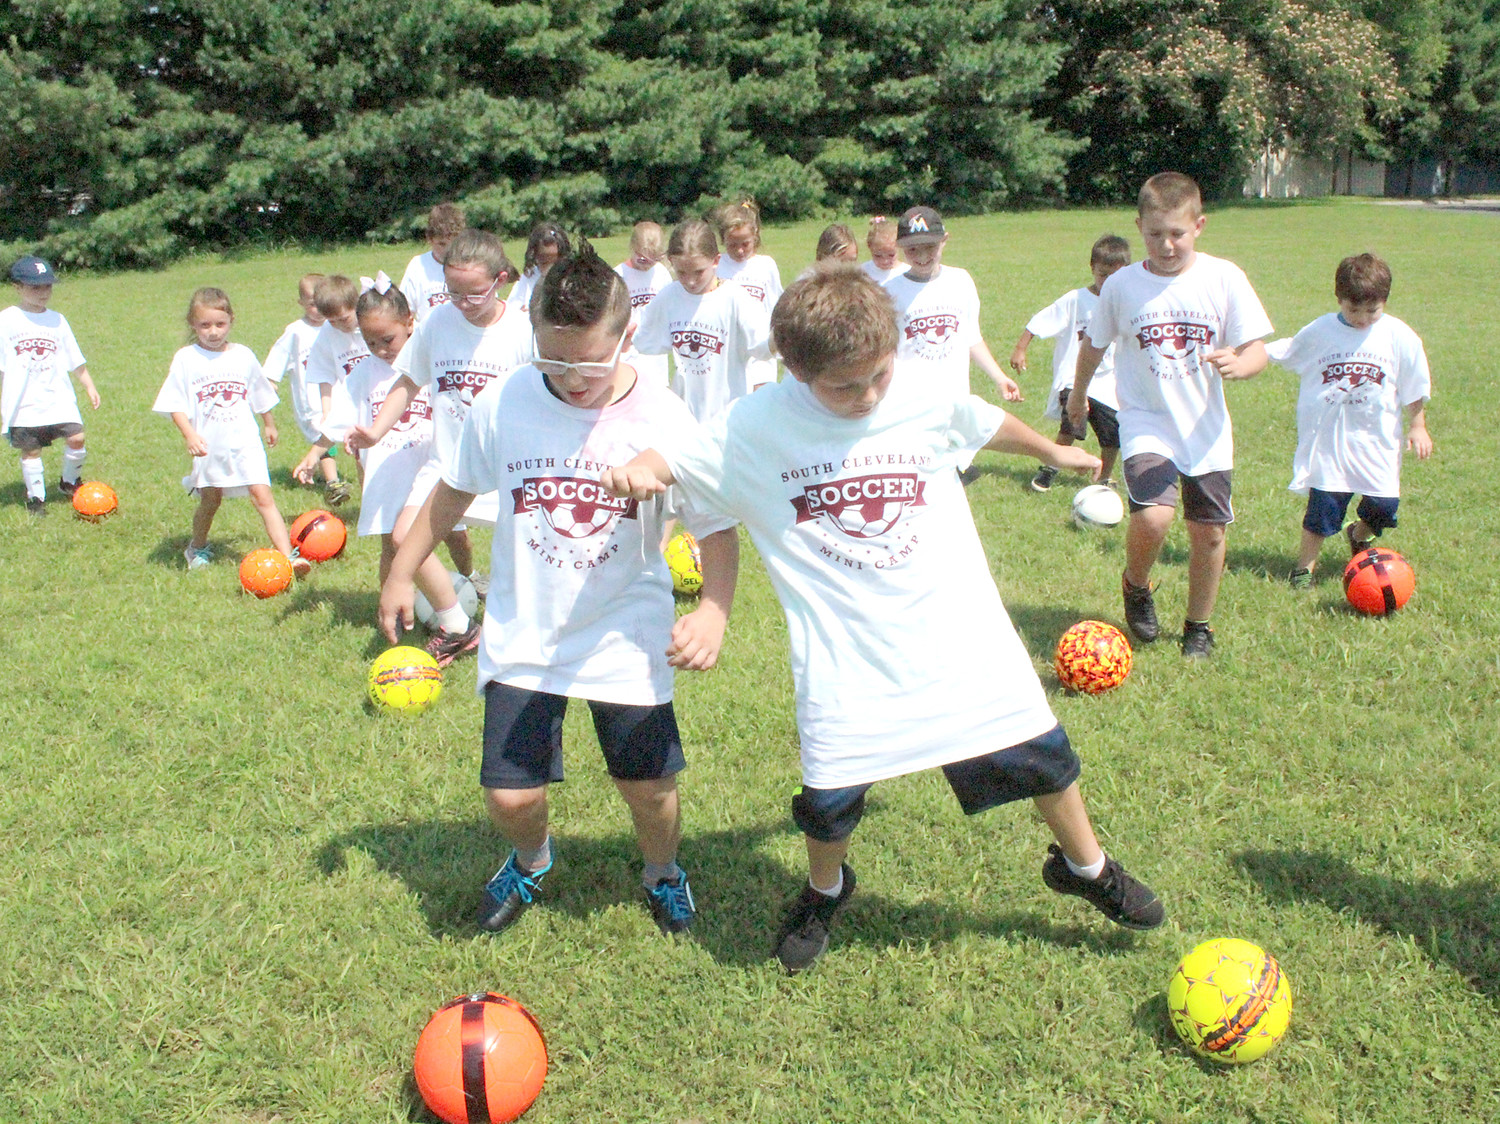 LOCAL SOCCER players had fun at the inaugural South Cleveland mini camp at Blythe-Bower Elementary School on Tuesday and Wednesday. The camp was free of charge and sent campers home with free soccer balls and T-shirts.